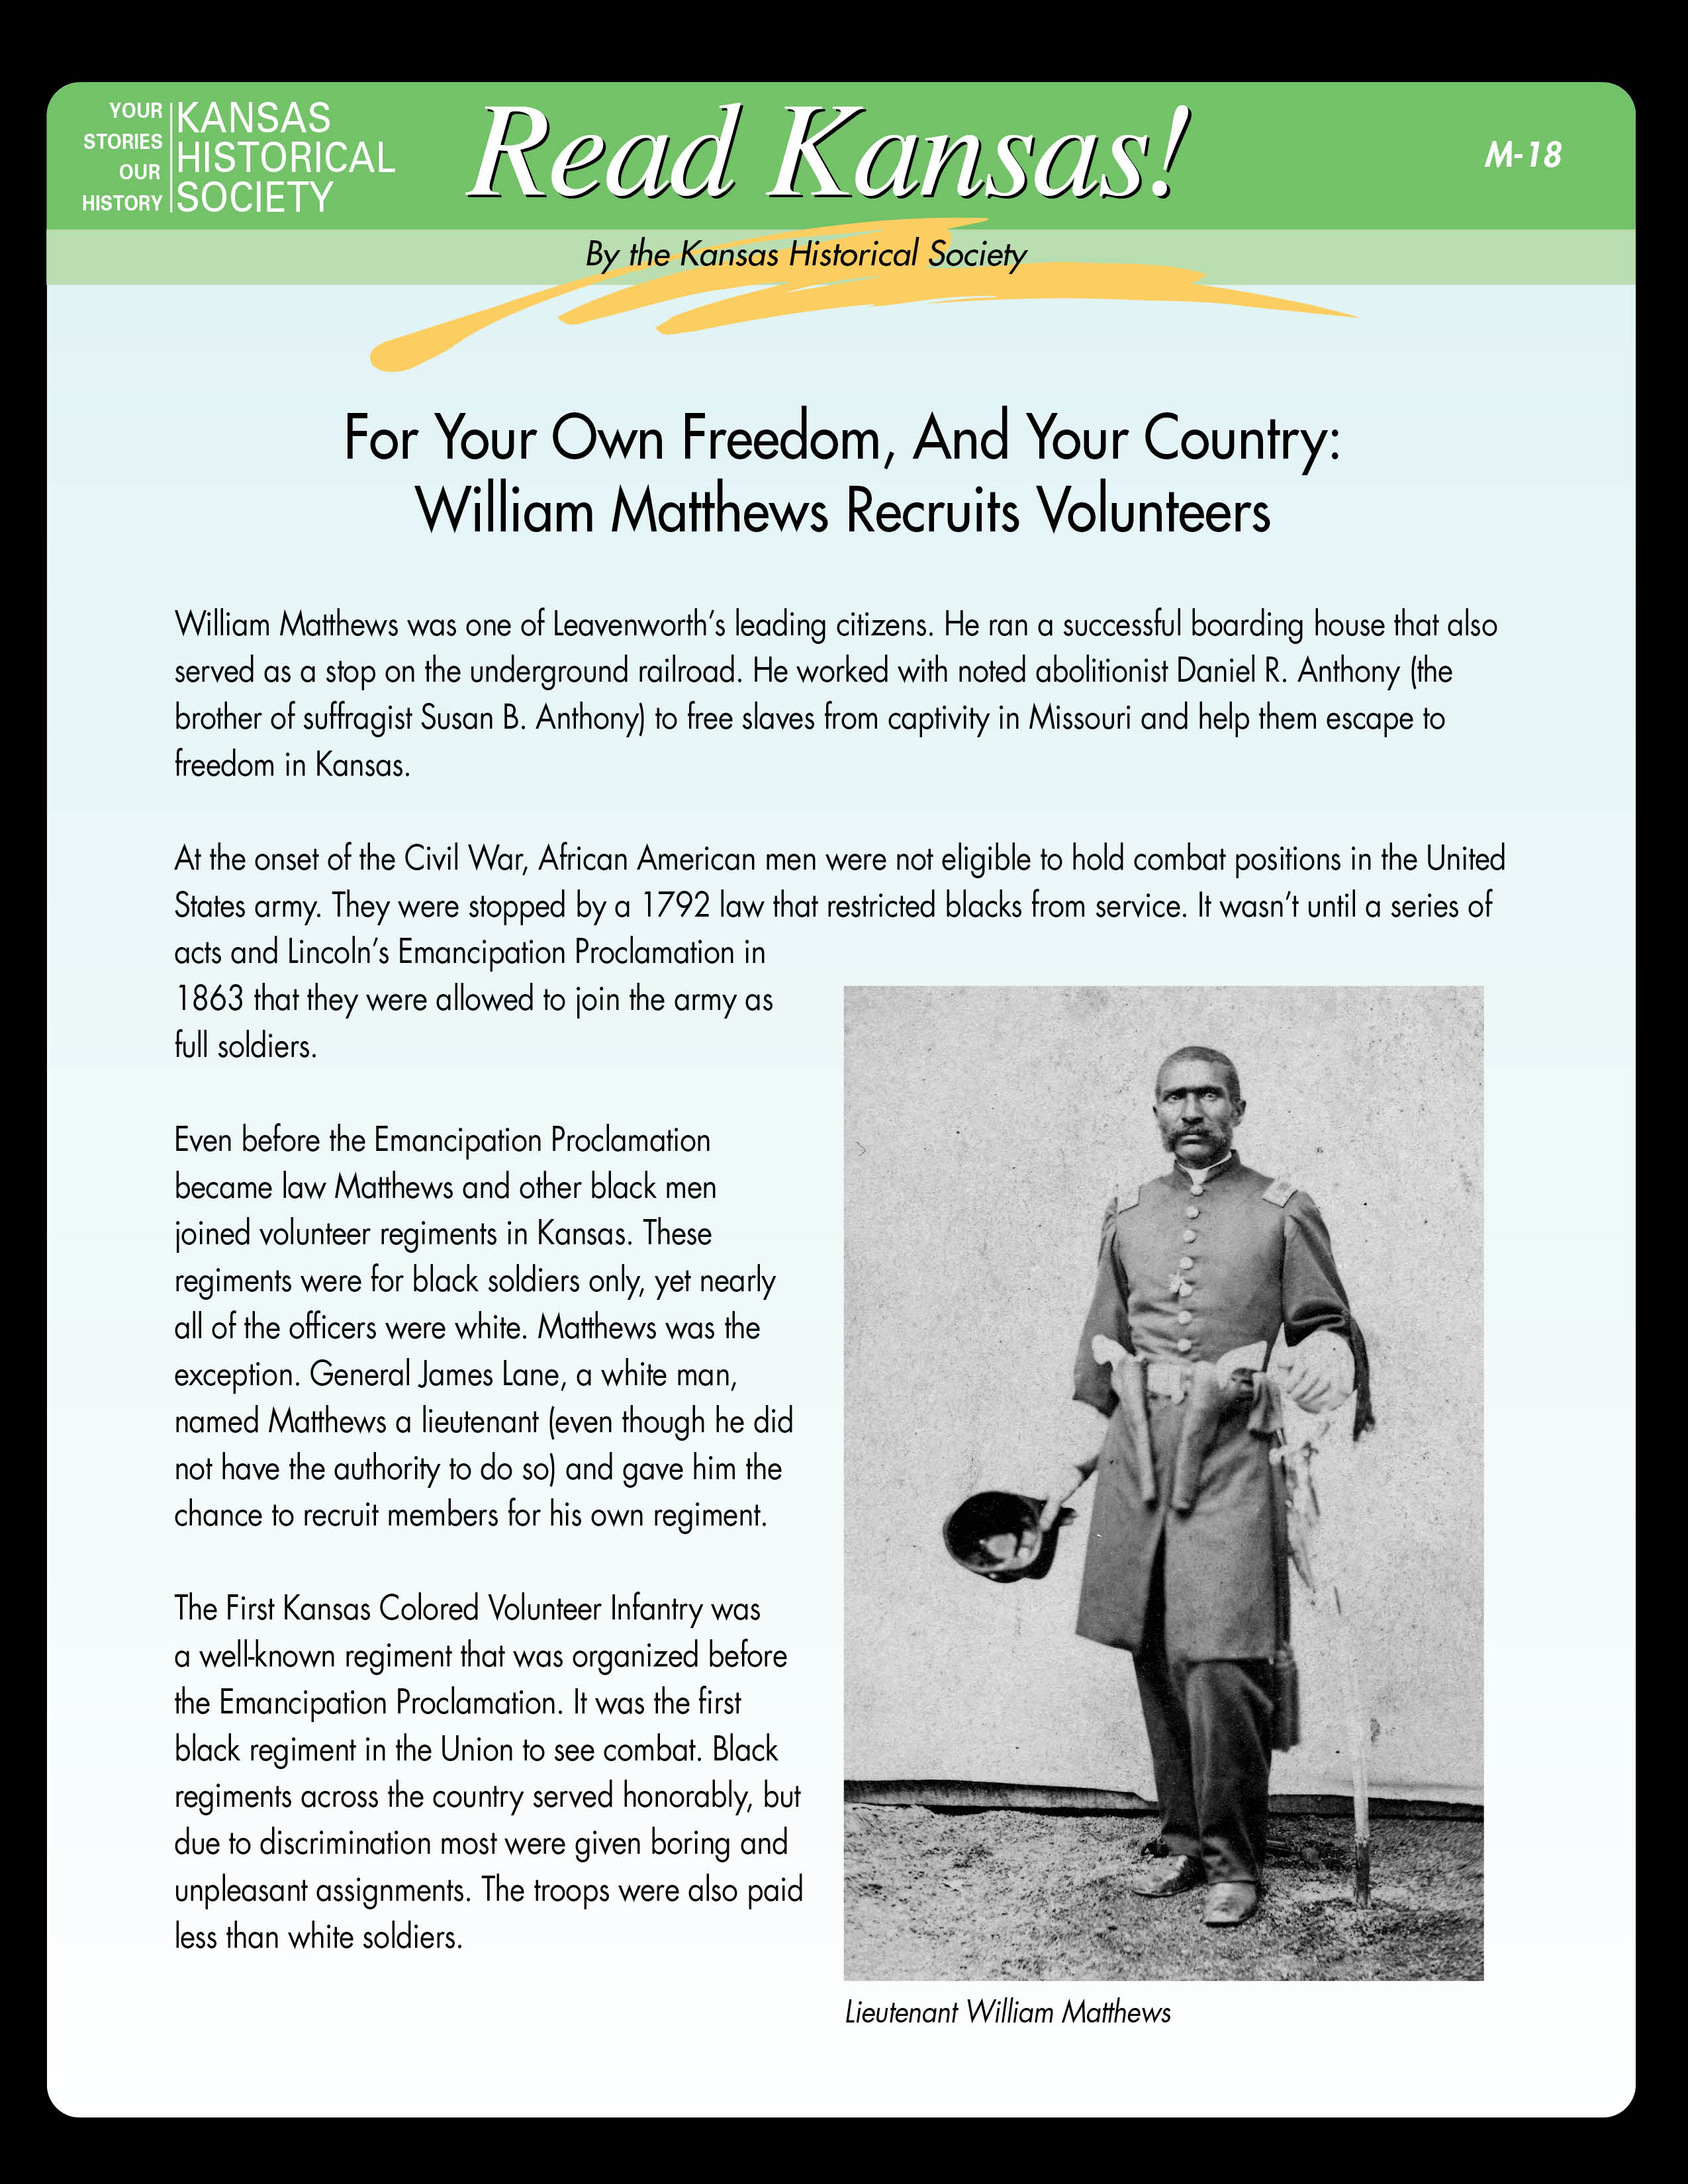 M-18 For Your Own Freedom, and Your Country: William Matthews Recruits Volunteers